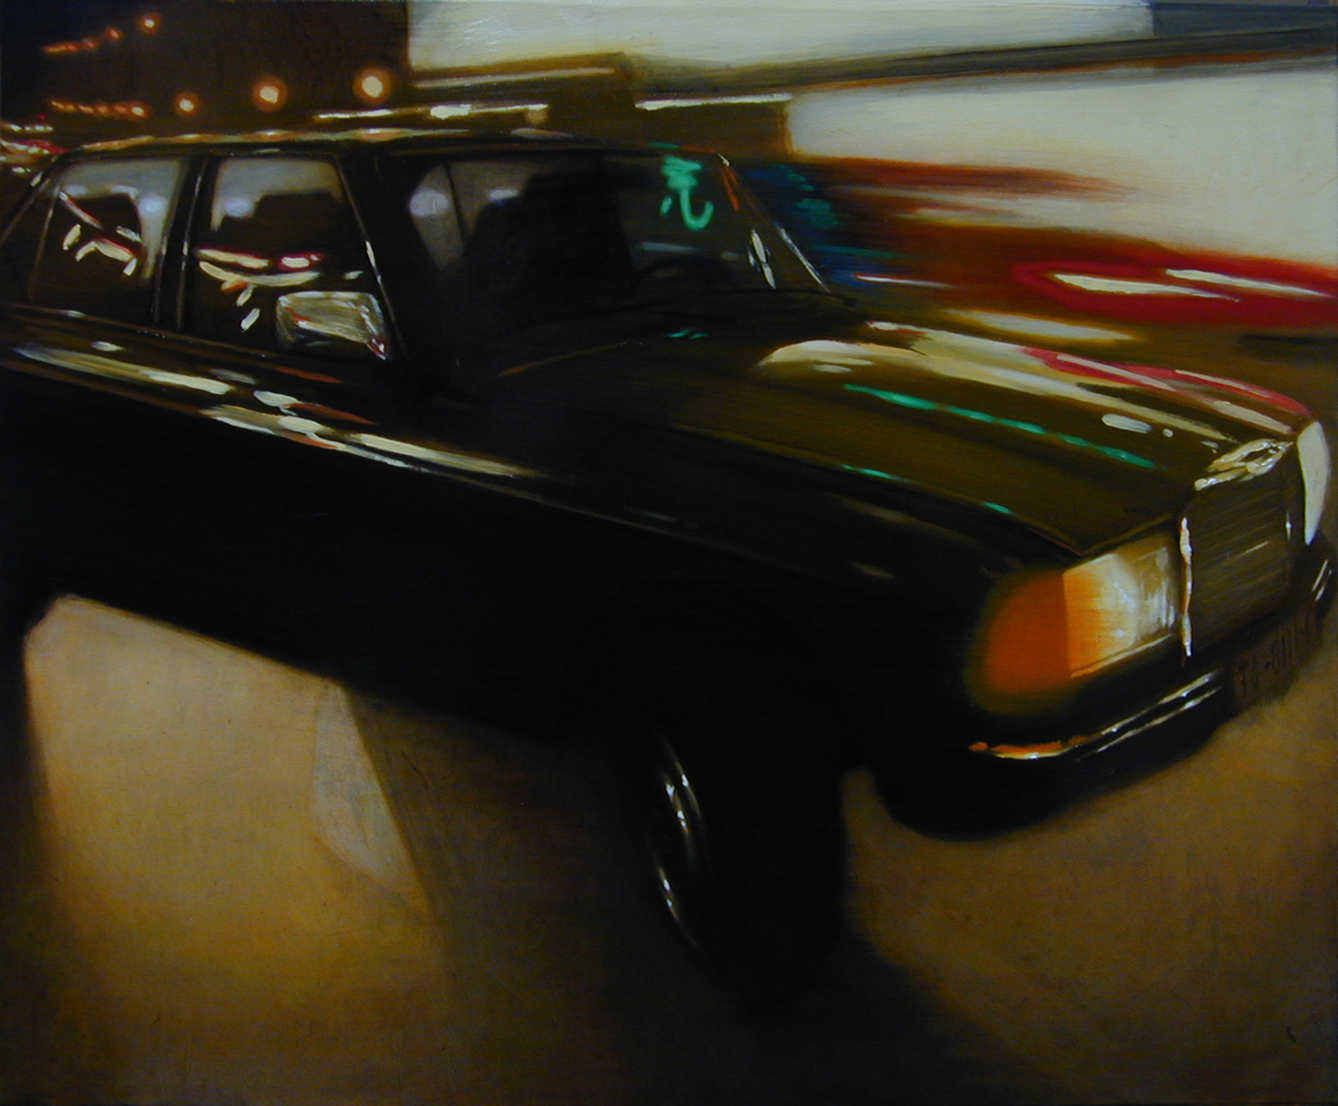 Alberto Perezsan Oil on Wood Barcelona Amsterdam Madrid Milan realism art painting mercedes